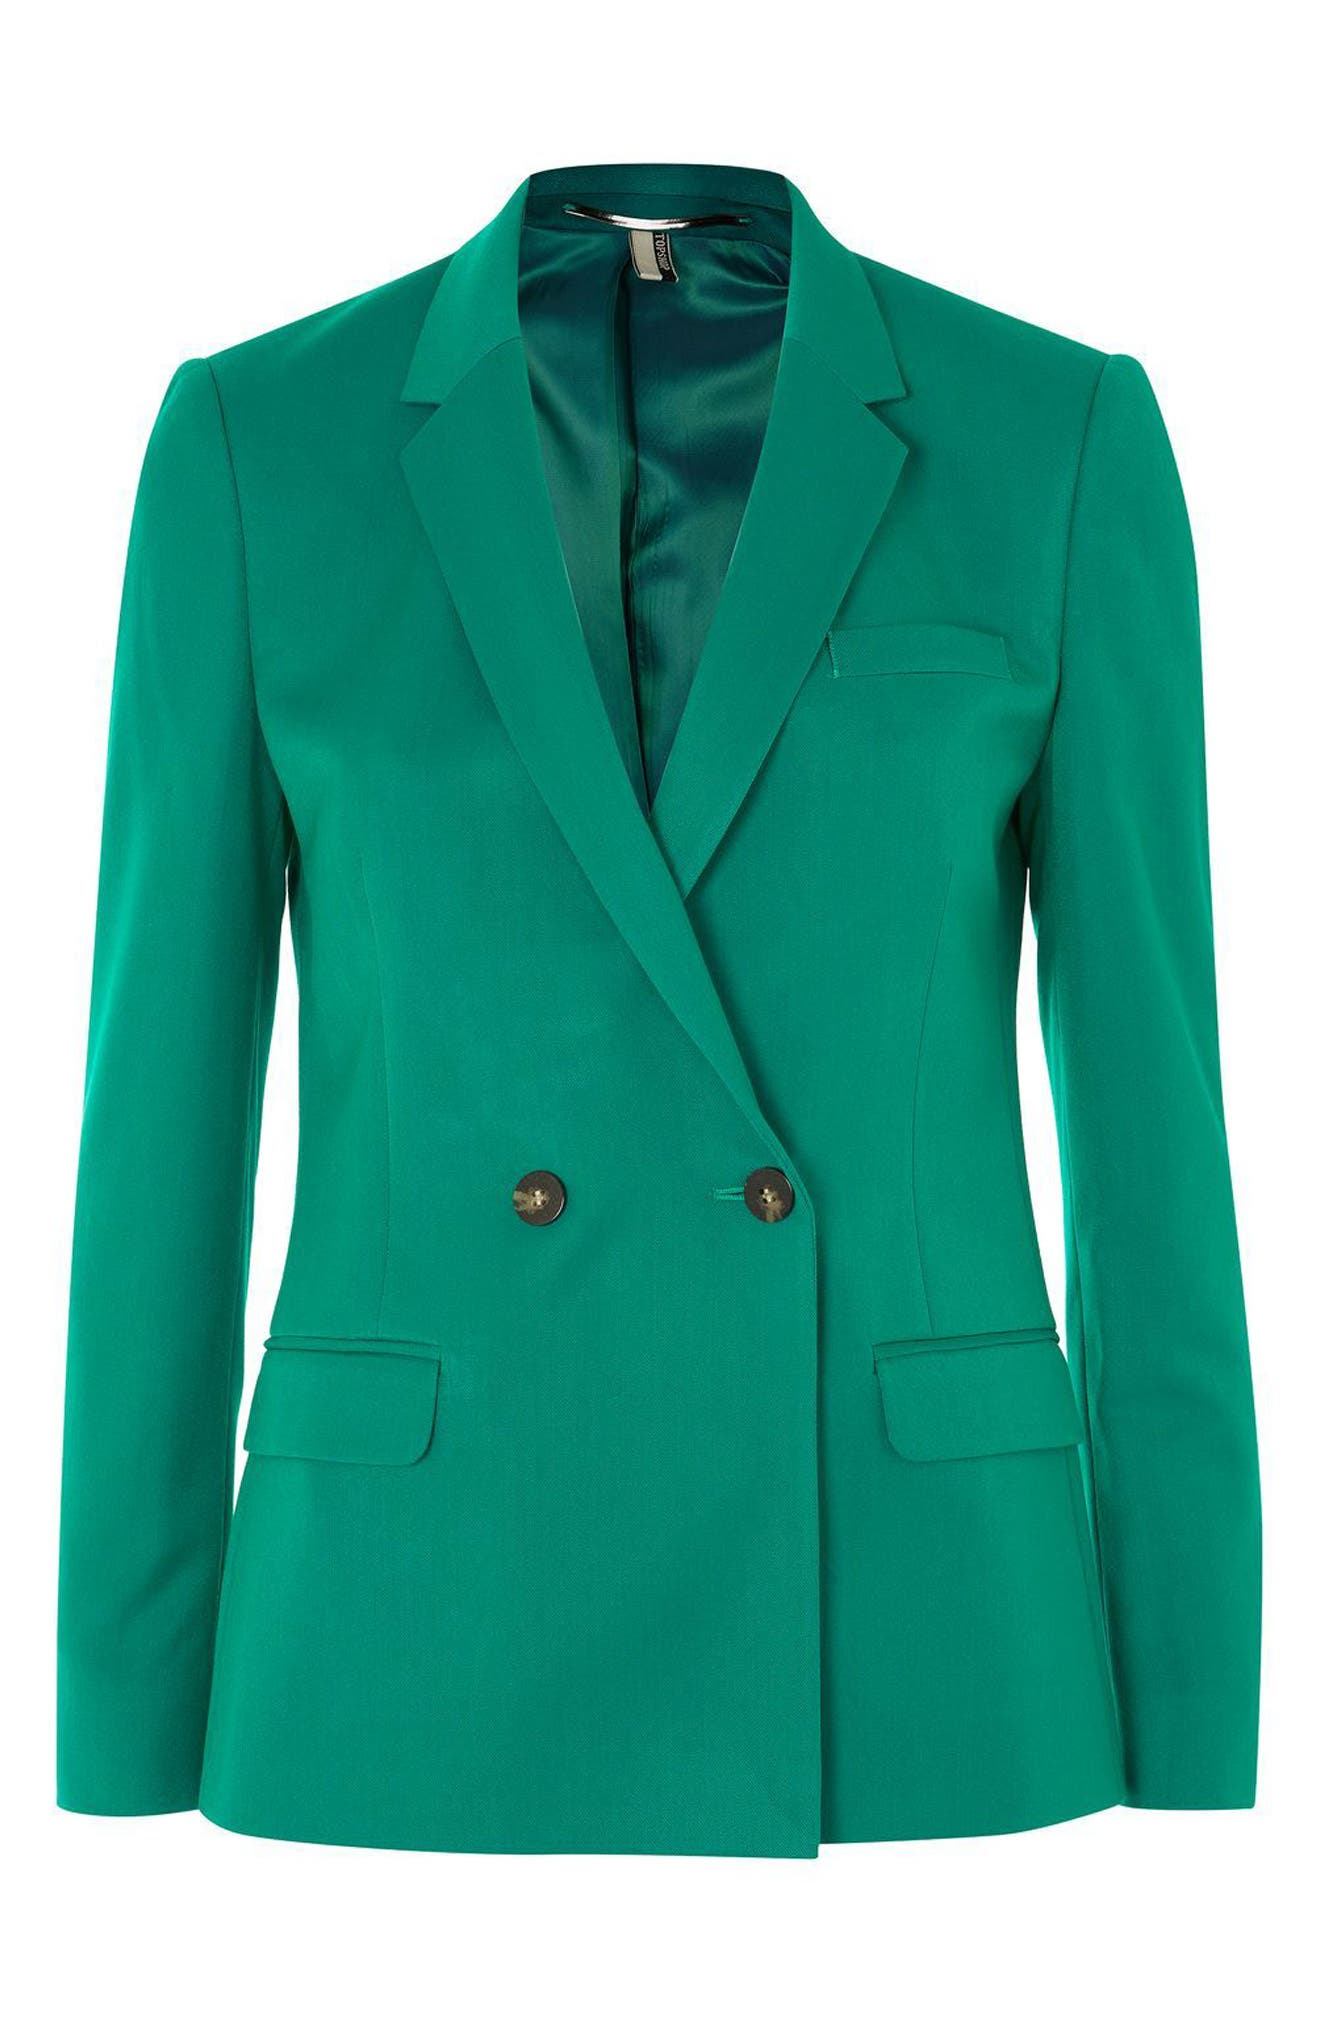 Double Breasted Suit Jacket,                             Alternate thumbnail 4, color,                             300